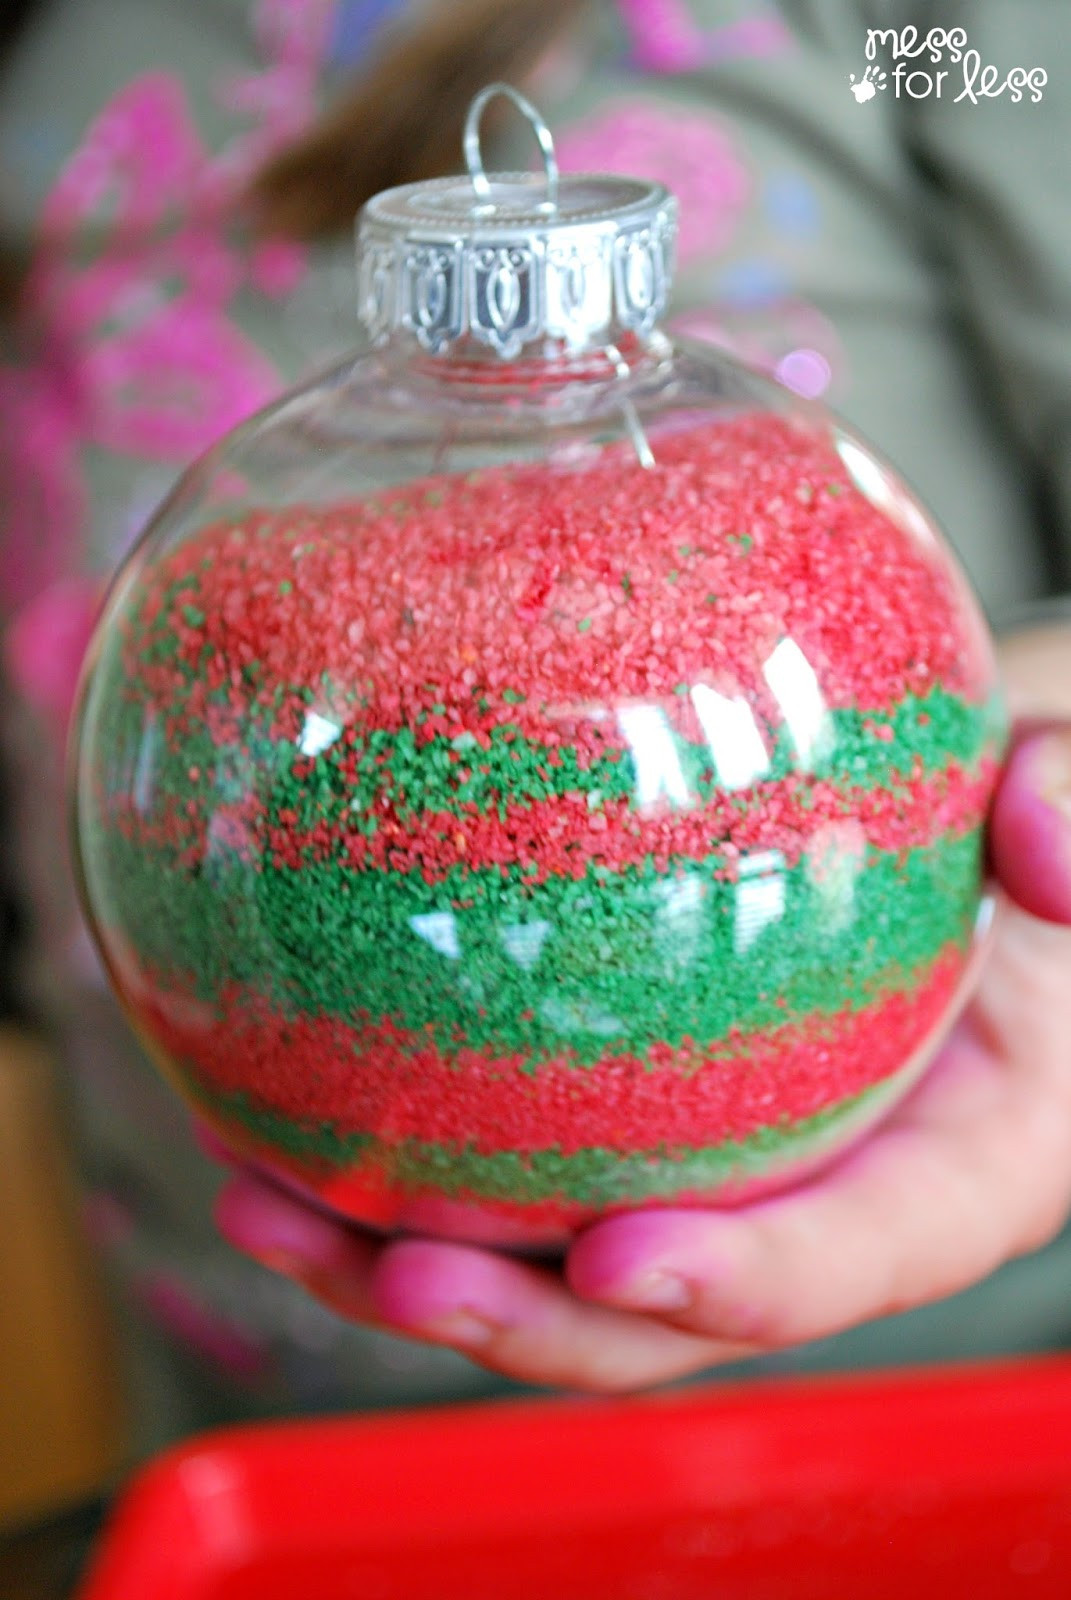 Christmas ornaments Best Of Kids Homemade Christmas ornaments Mess for Less Of Incredible 48 Images Christmas ornaments